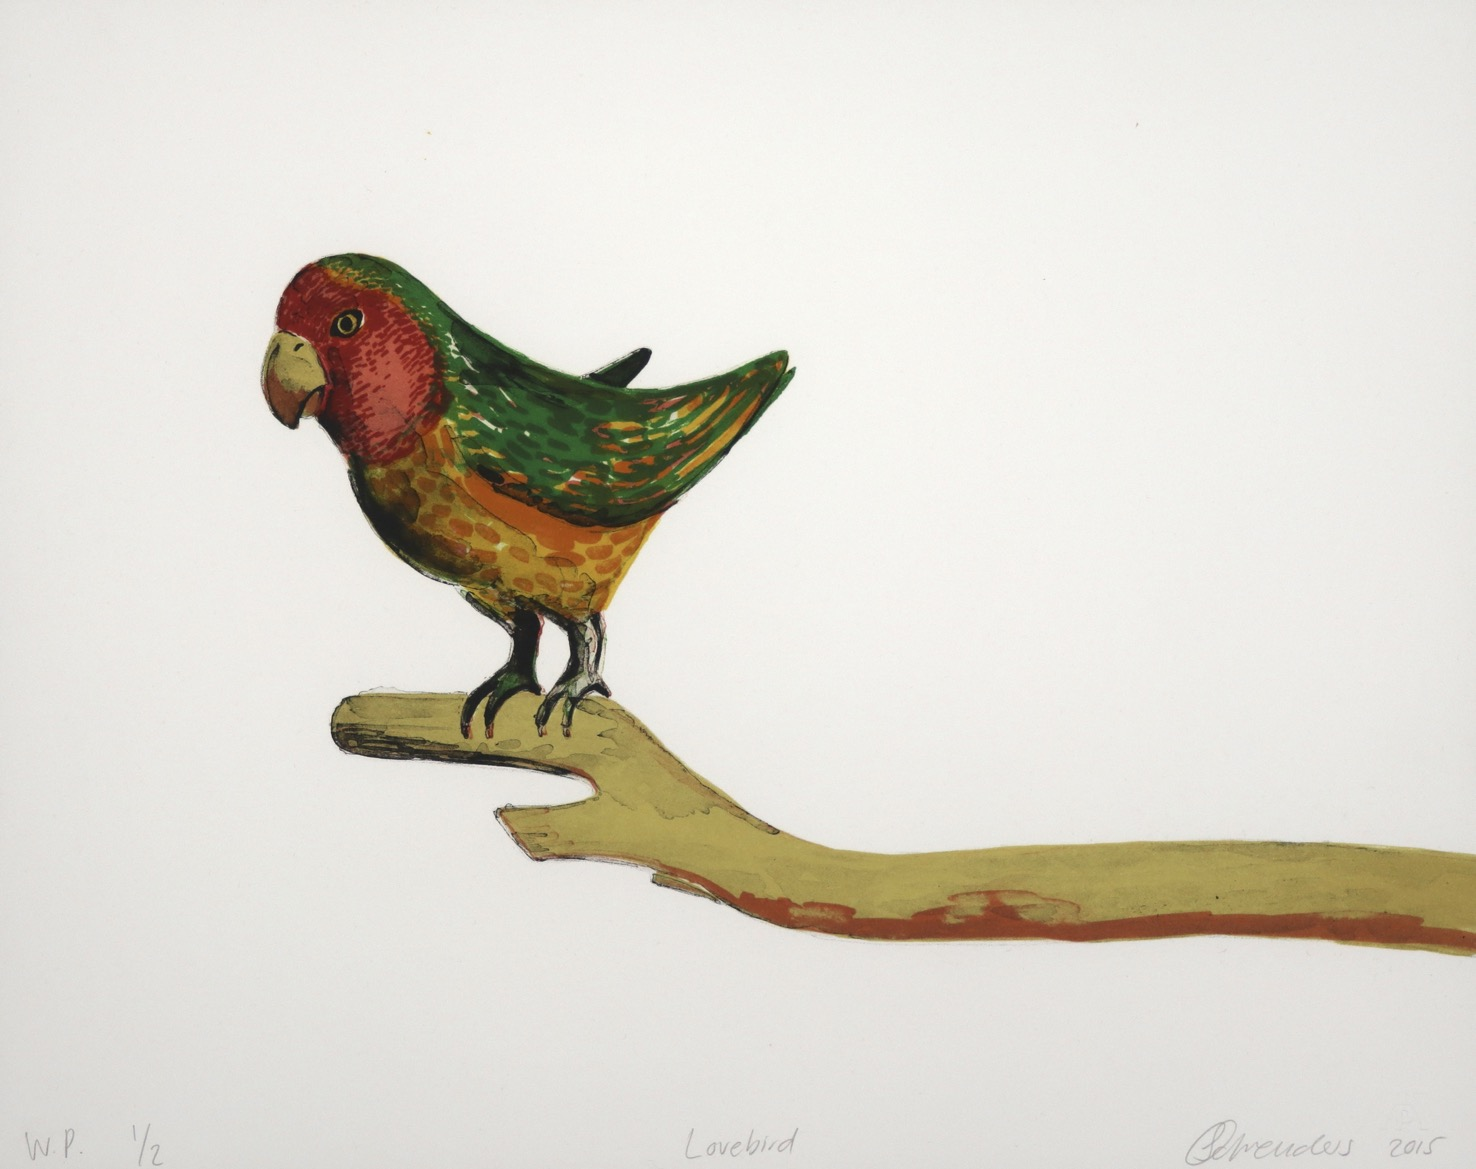 A brightly coloured love bird standing on a wooden branch perch